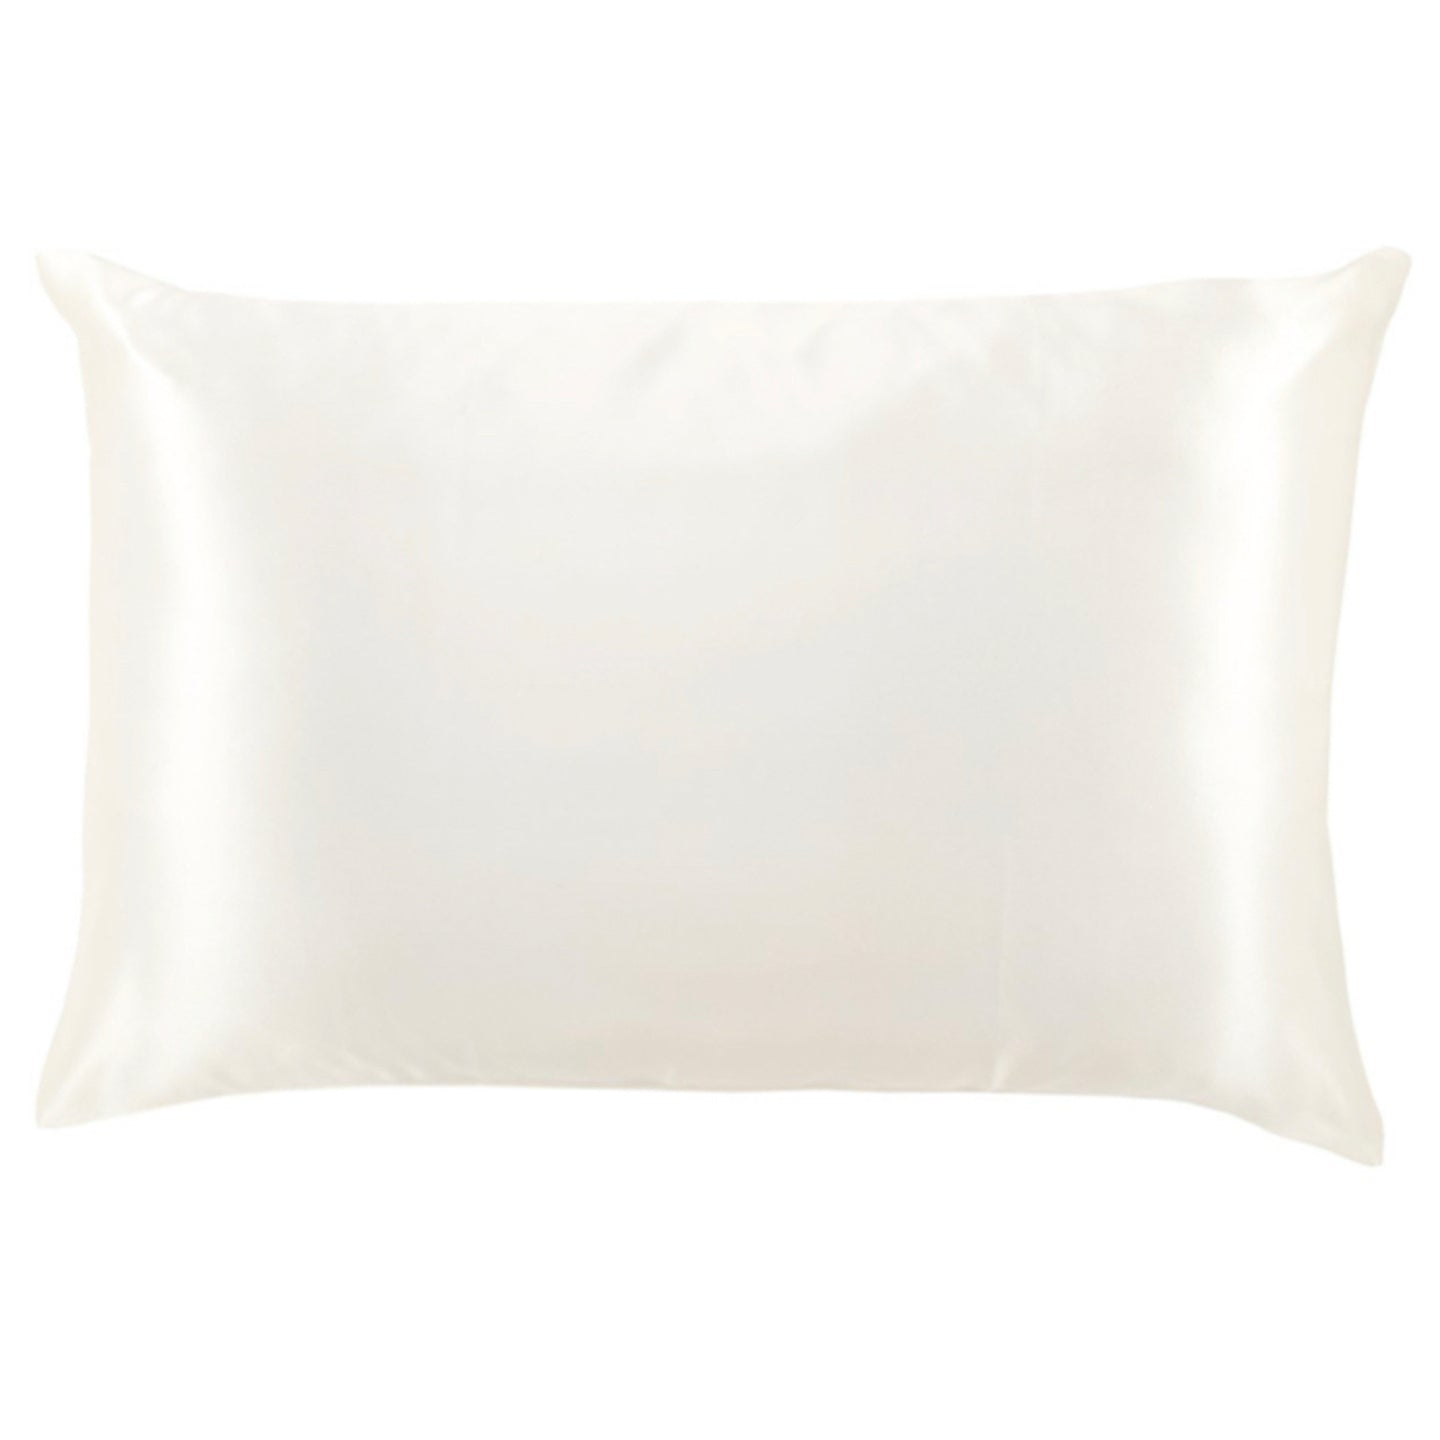 Ethical Kind Organic Peace Silk Pillowcase